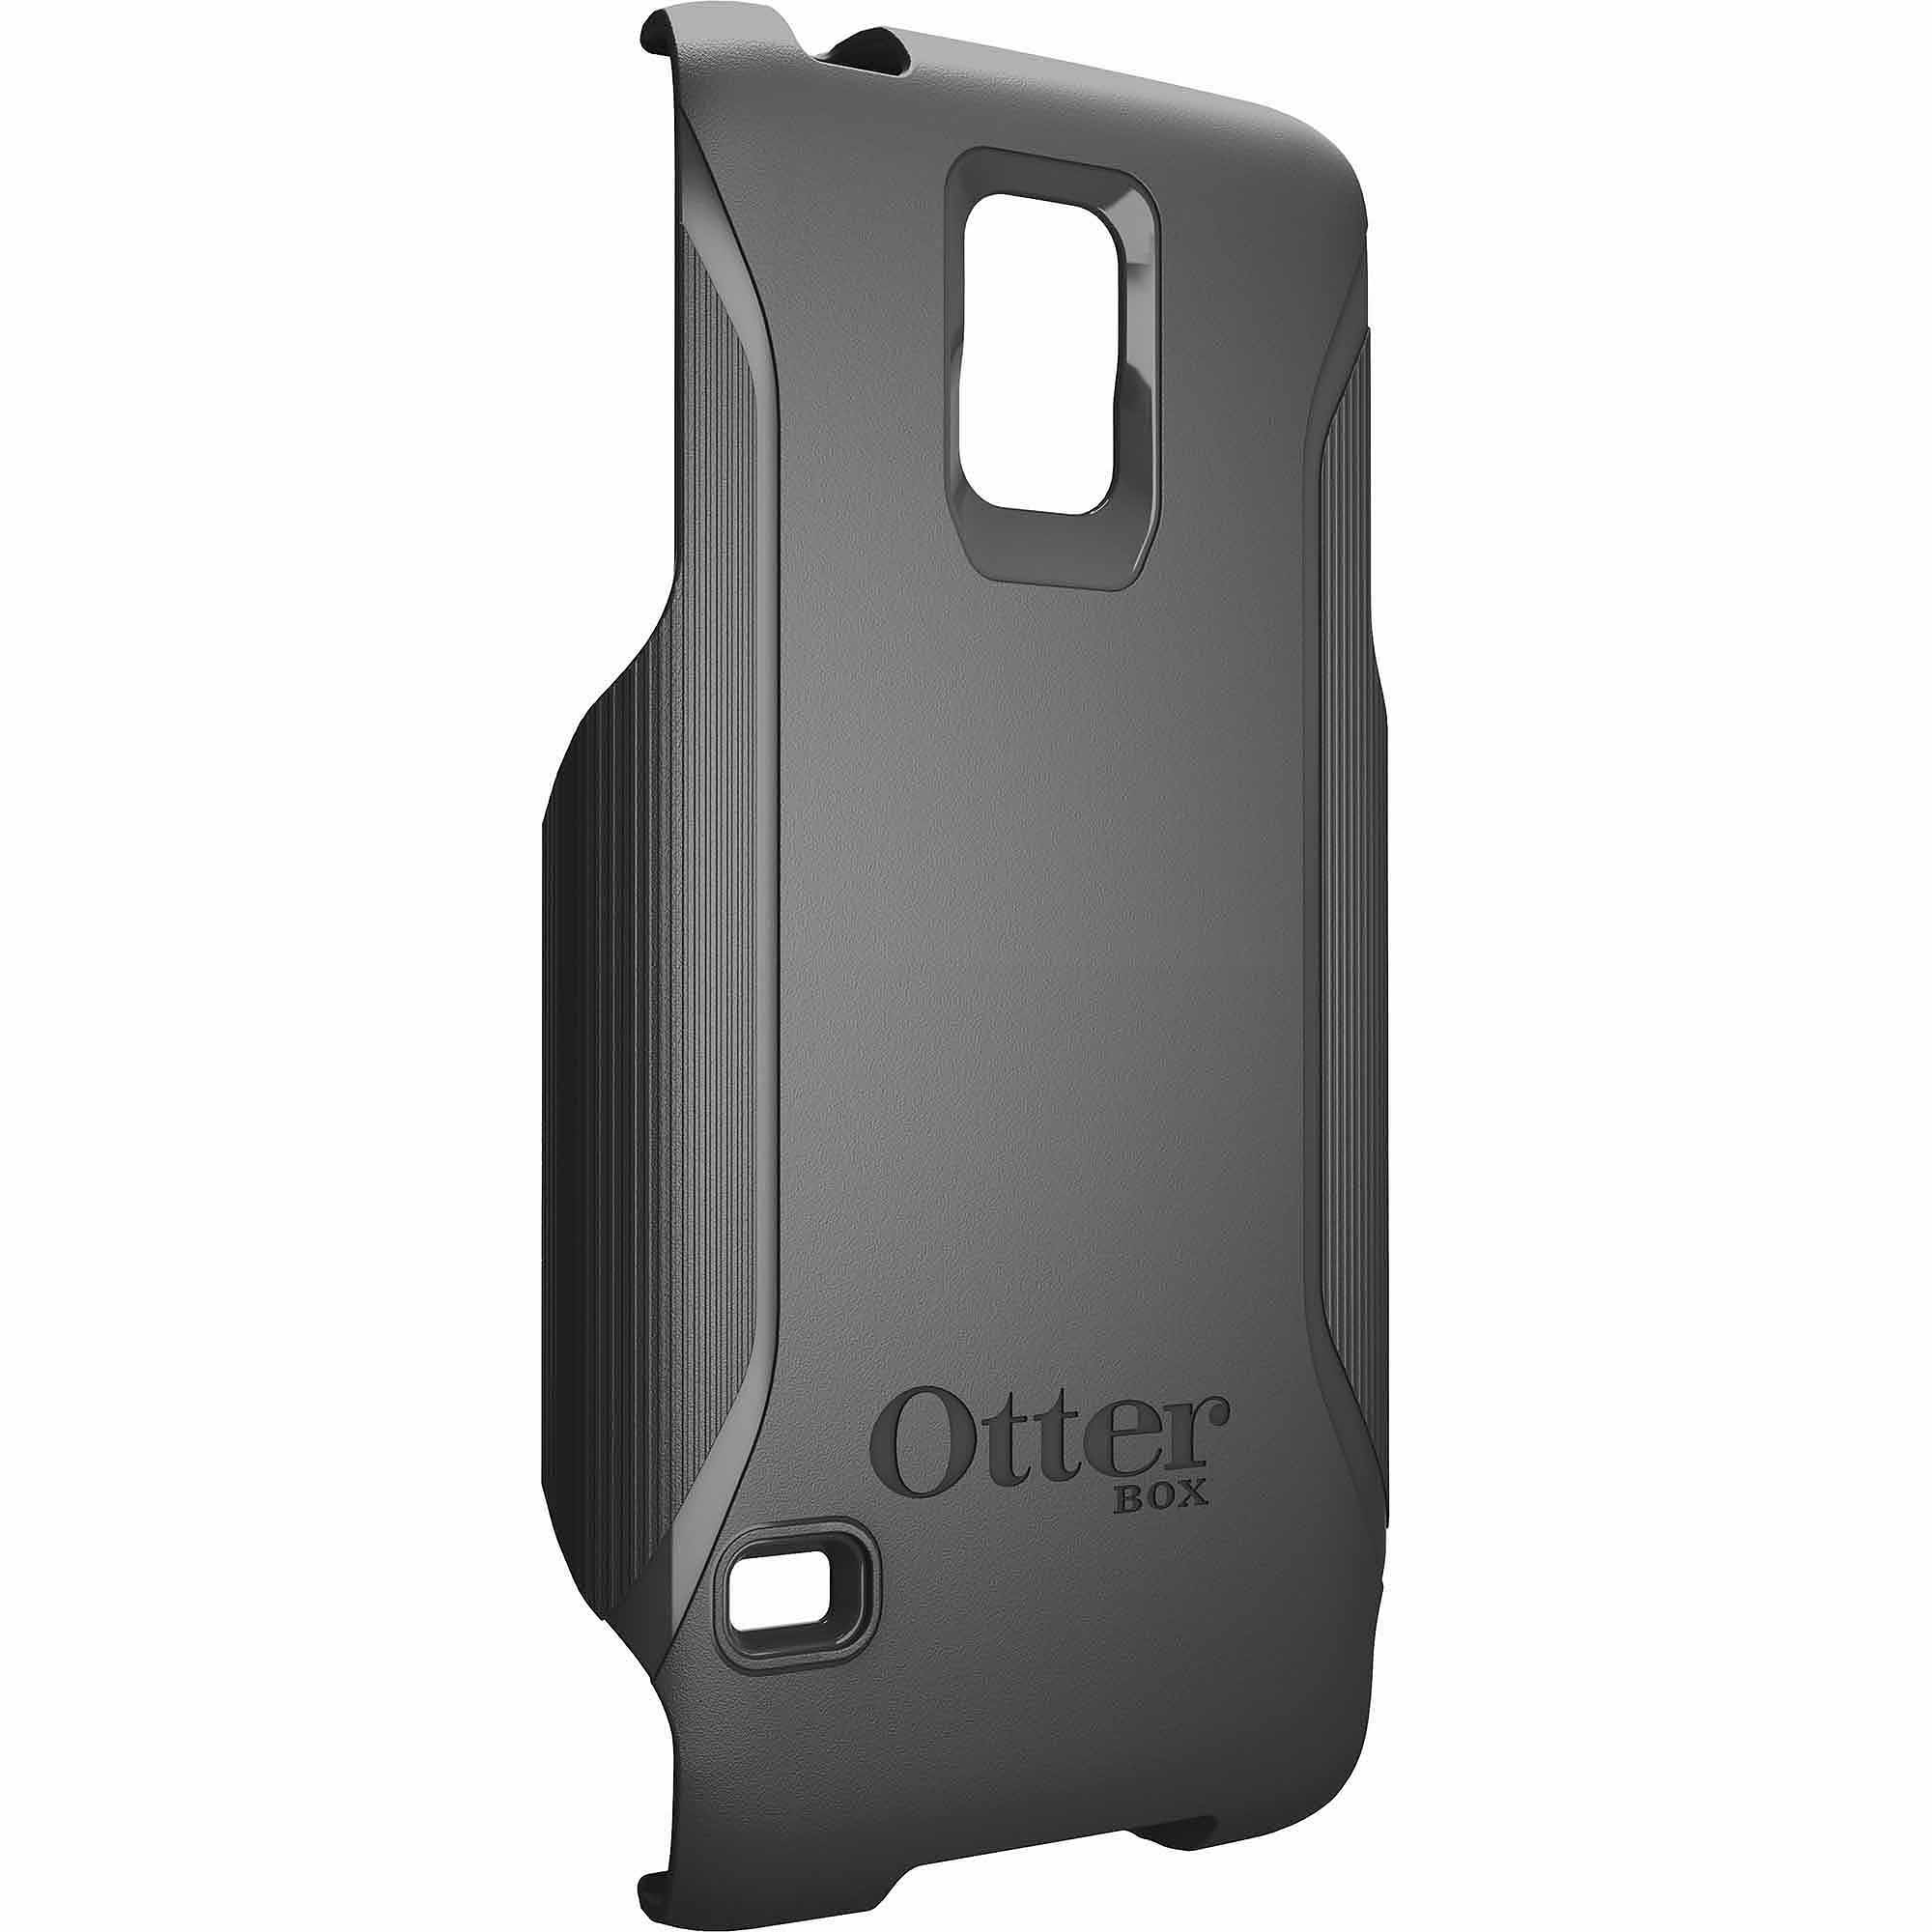 samsung galaxy s5 cases otterbox. otterbox commuter series case for samsung galaxy s5, black - walmart.com s5 cases otterbox s